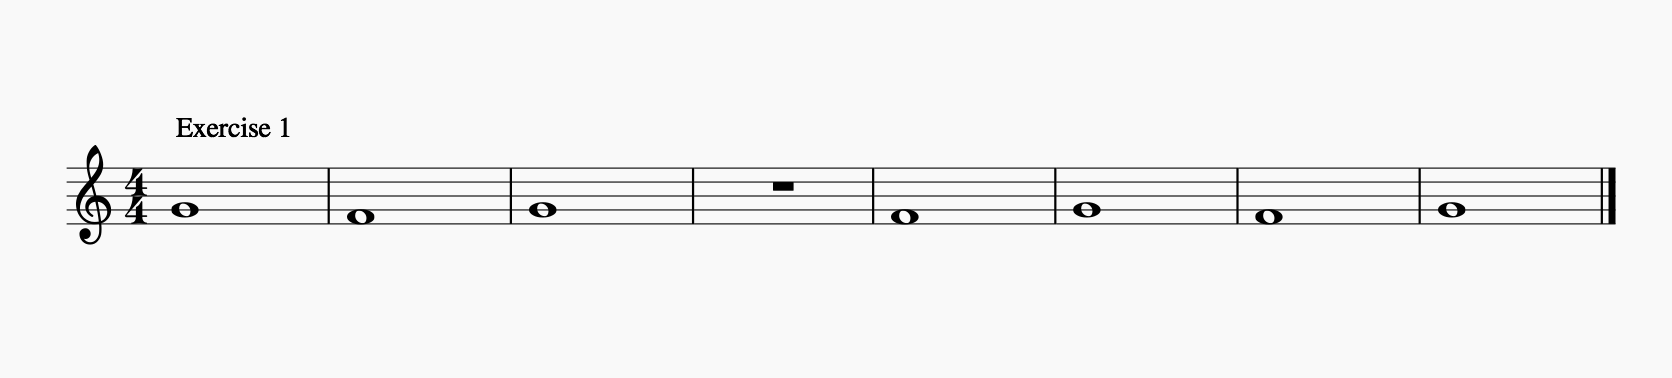 Duduk Scales C Major - Exercise 1